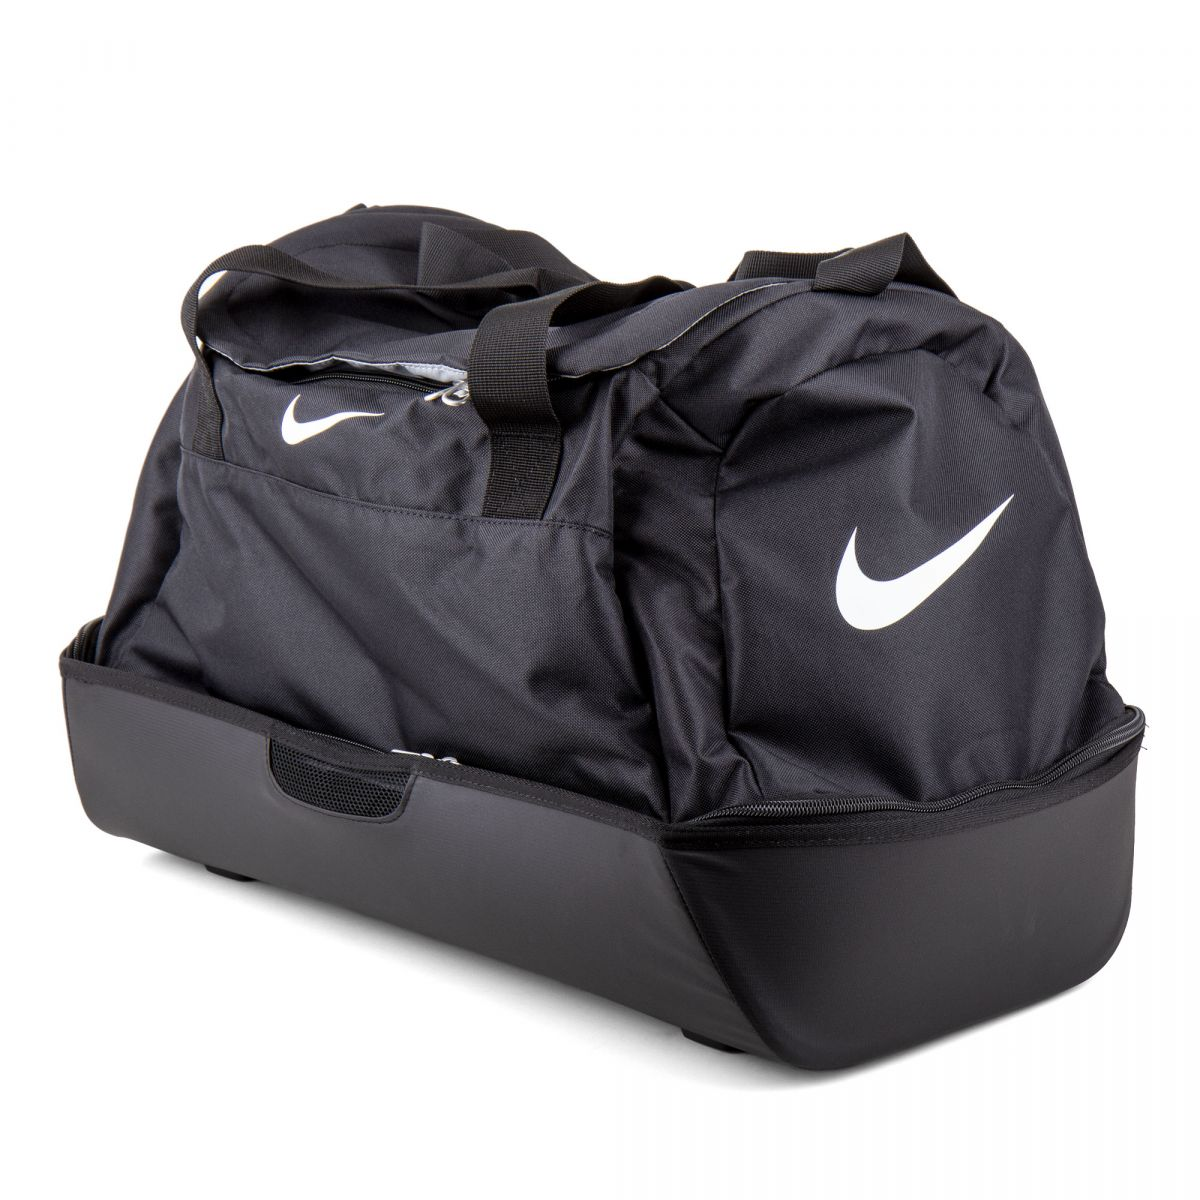 de5e2a459d Sac de sport Club Team Football rigide 52 L BA5195 NIKE à prix